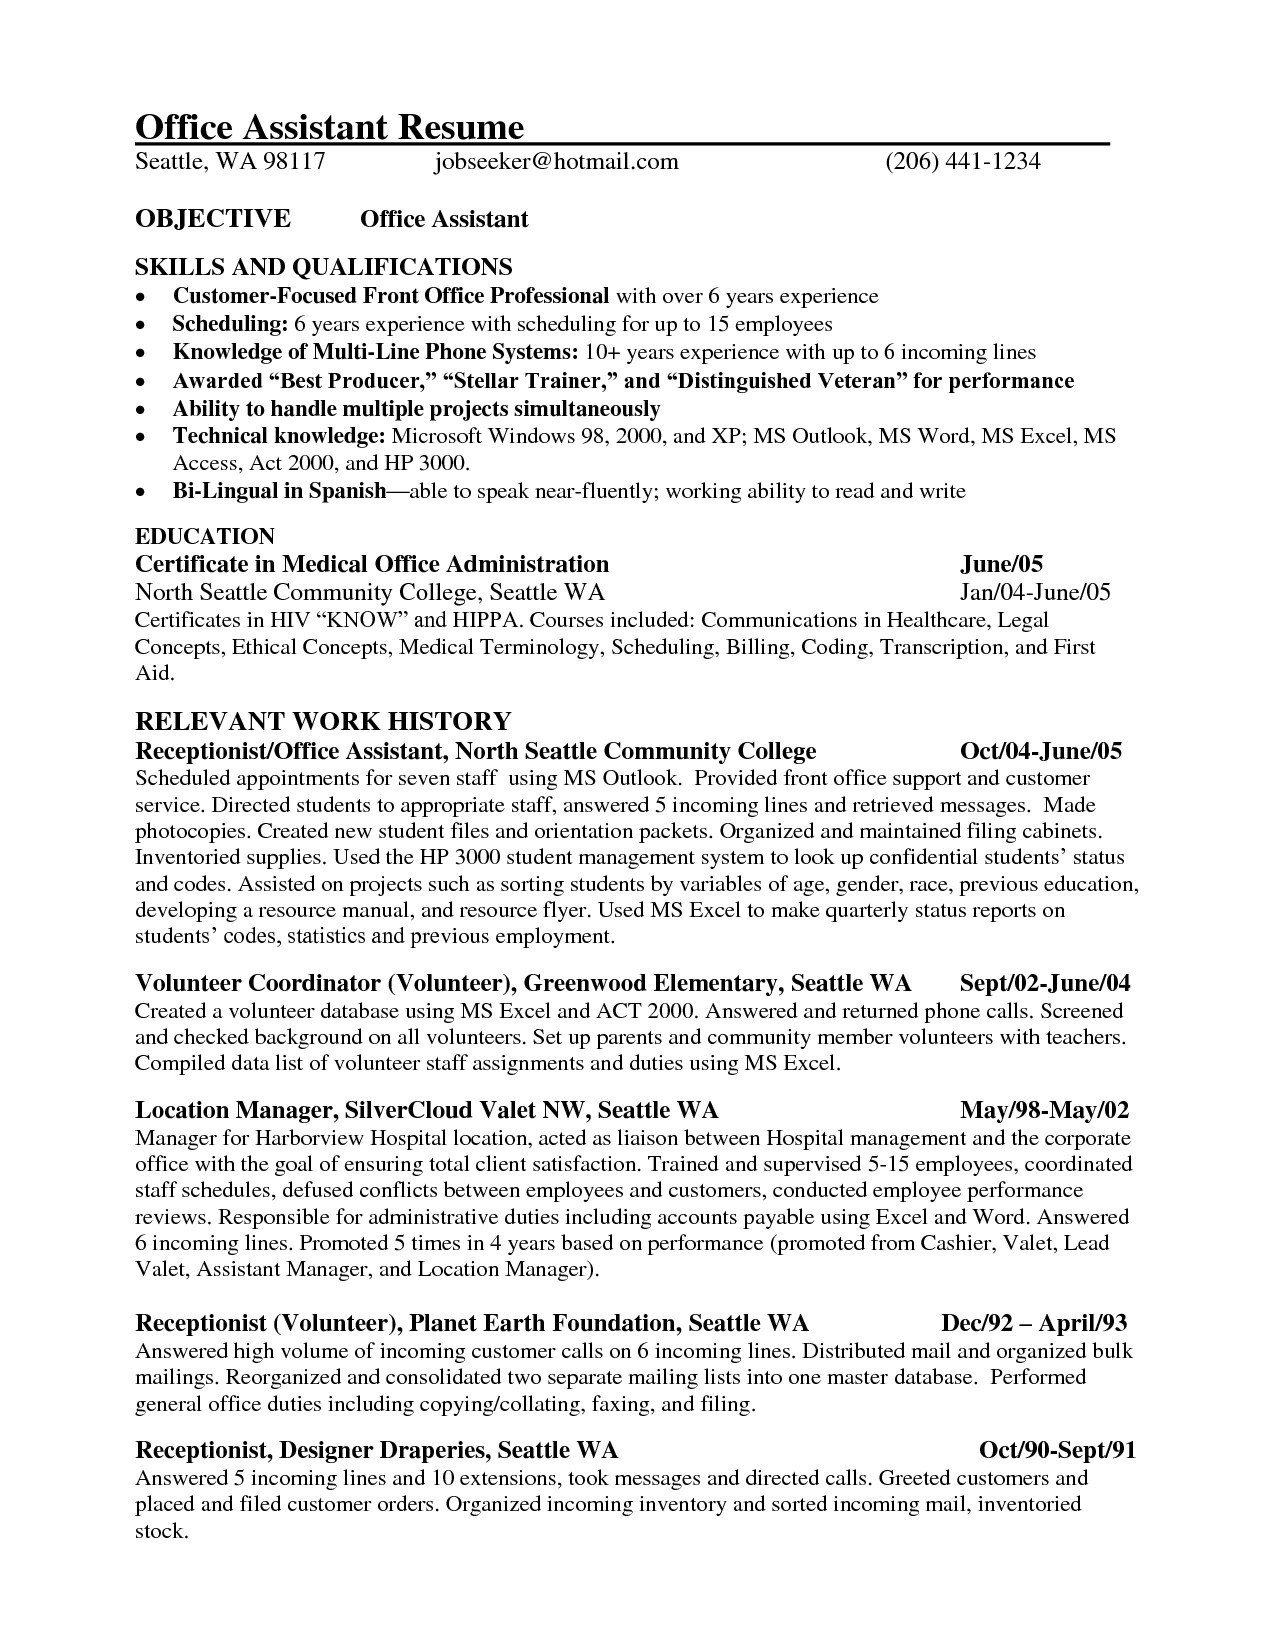 Healthcare Management Resume - 21 Resume Words for Manage